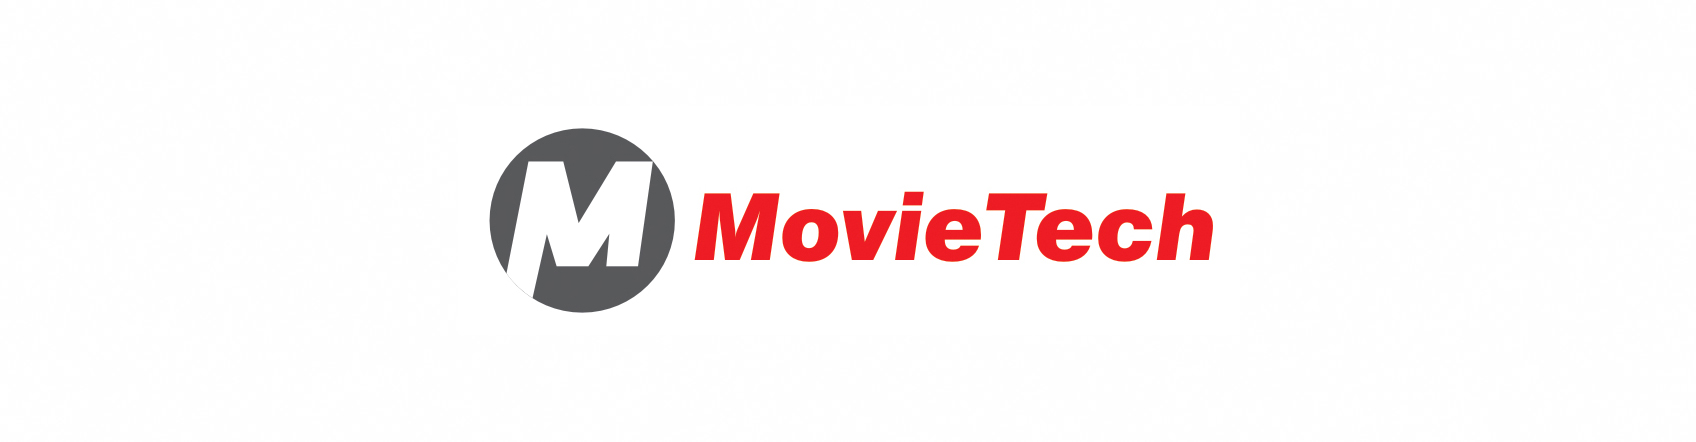 Movie Tech Logo Catts Camera